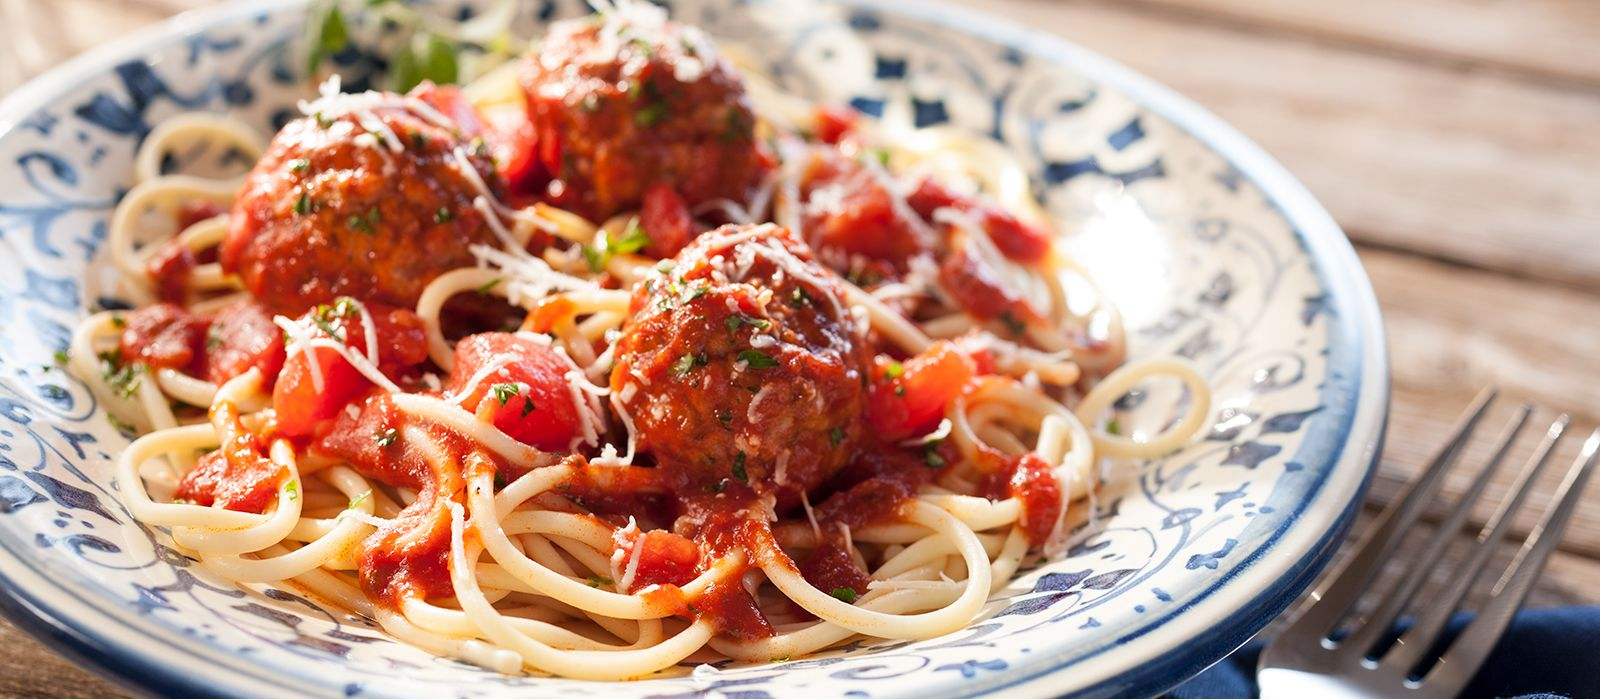 home market foods cooked perfect meatballs and pasta